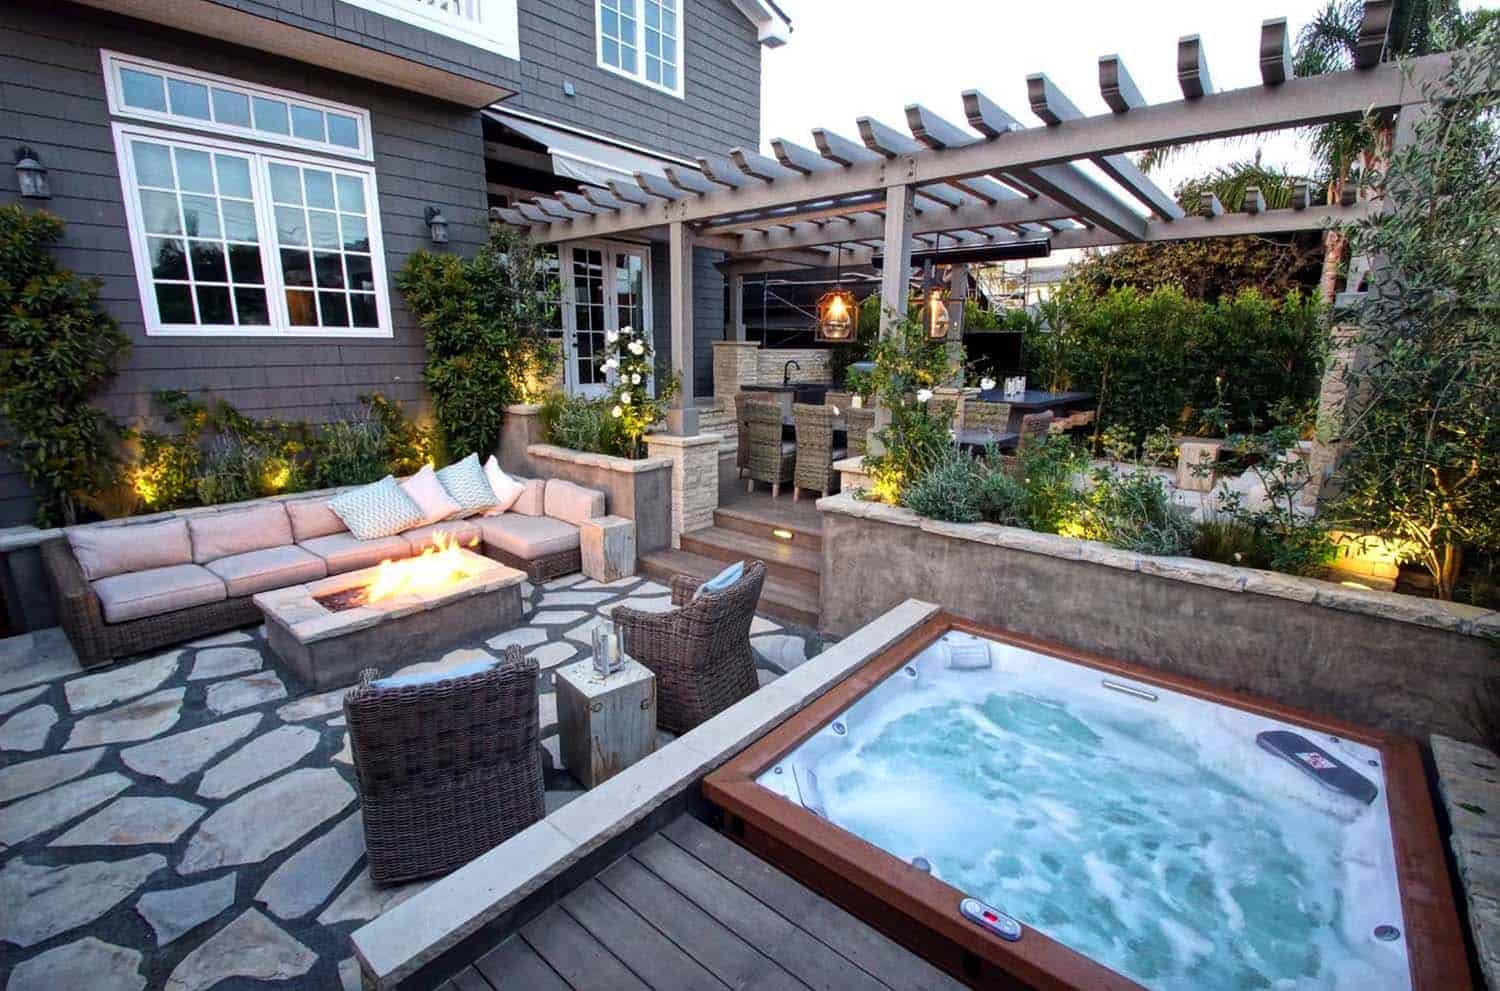 40+ Outstanding Hot Tub Ideas To Create A Backyard Oasis on Small Backyard Oasis Ideas id=74573